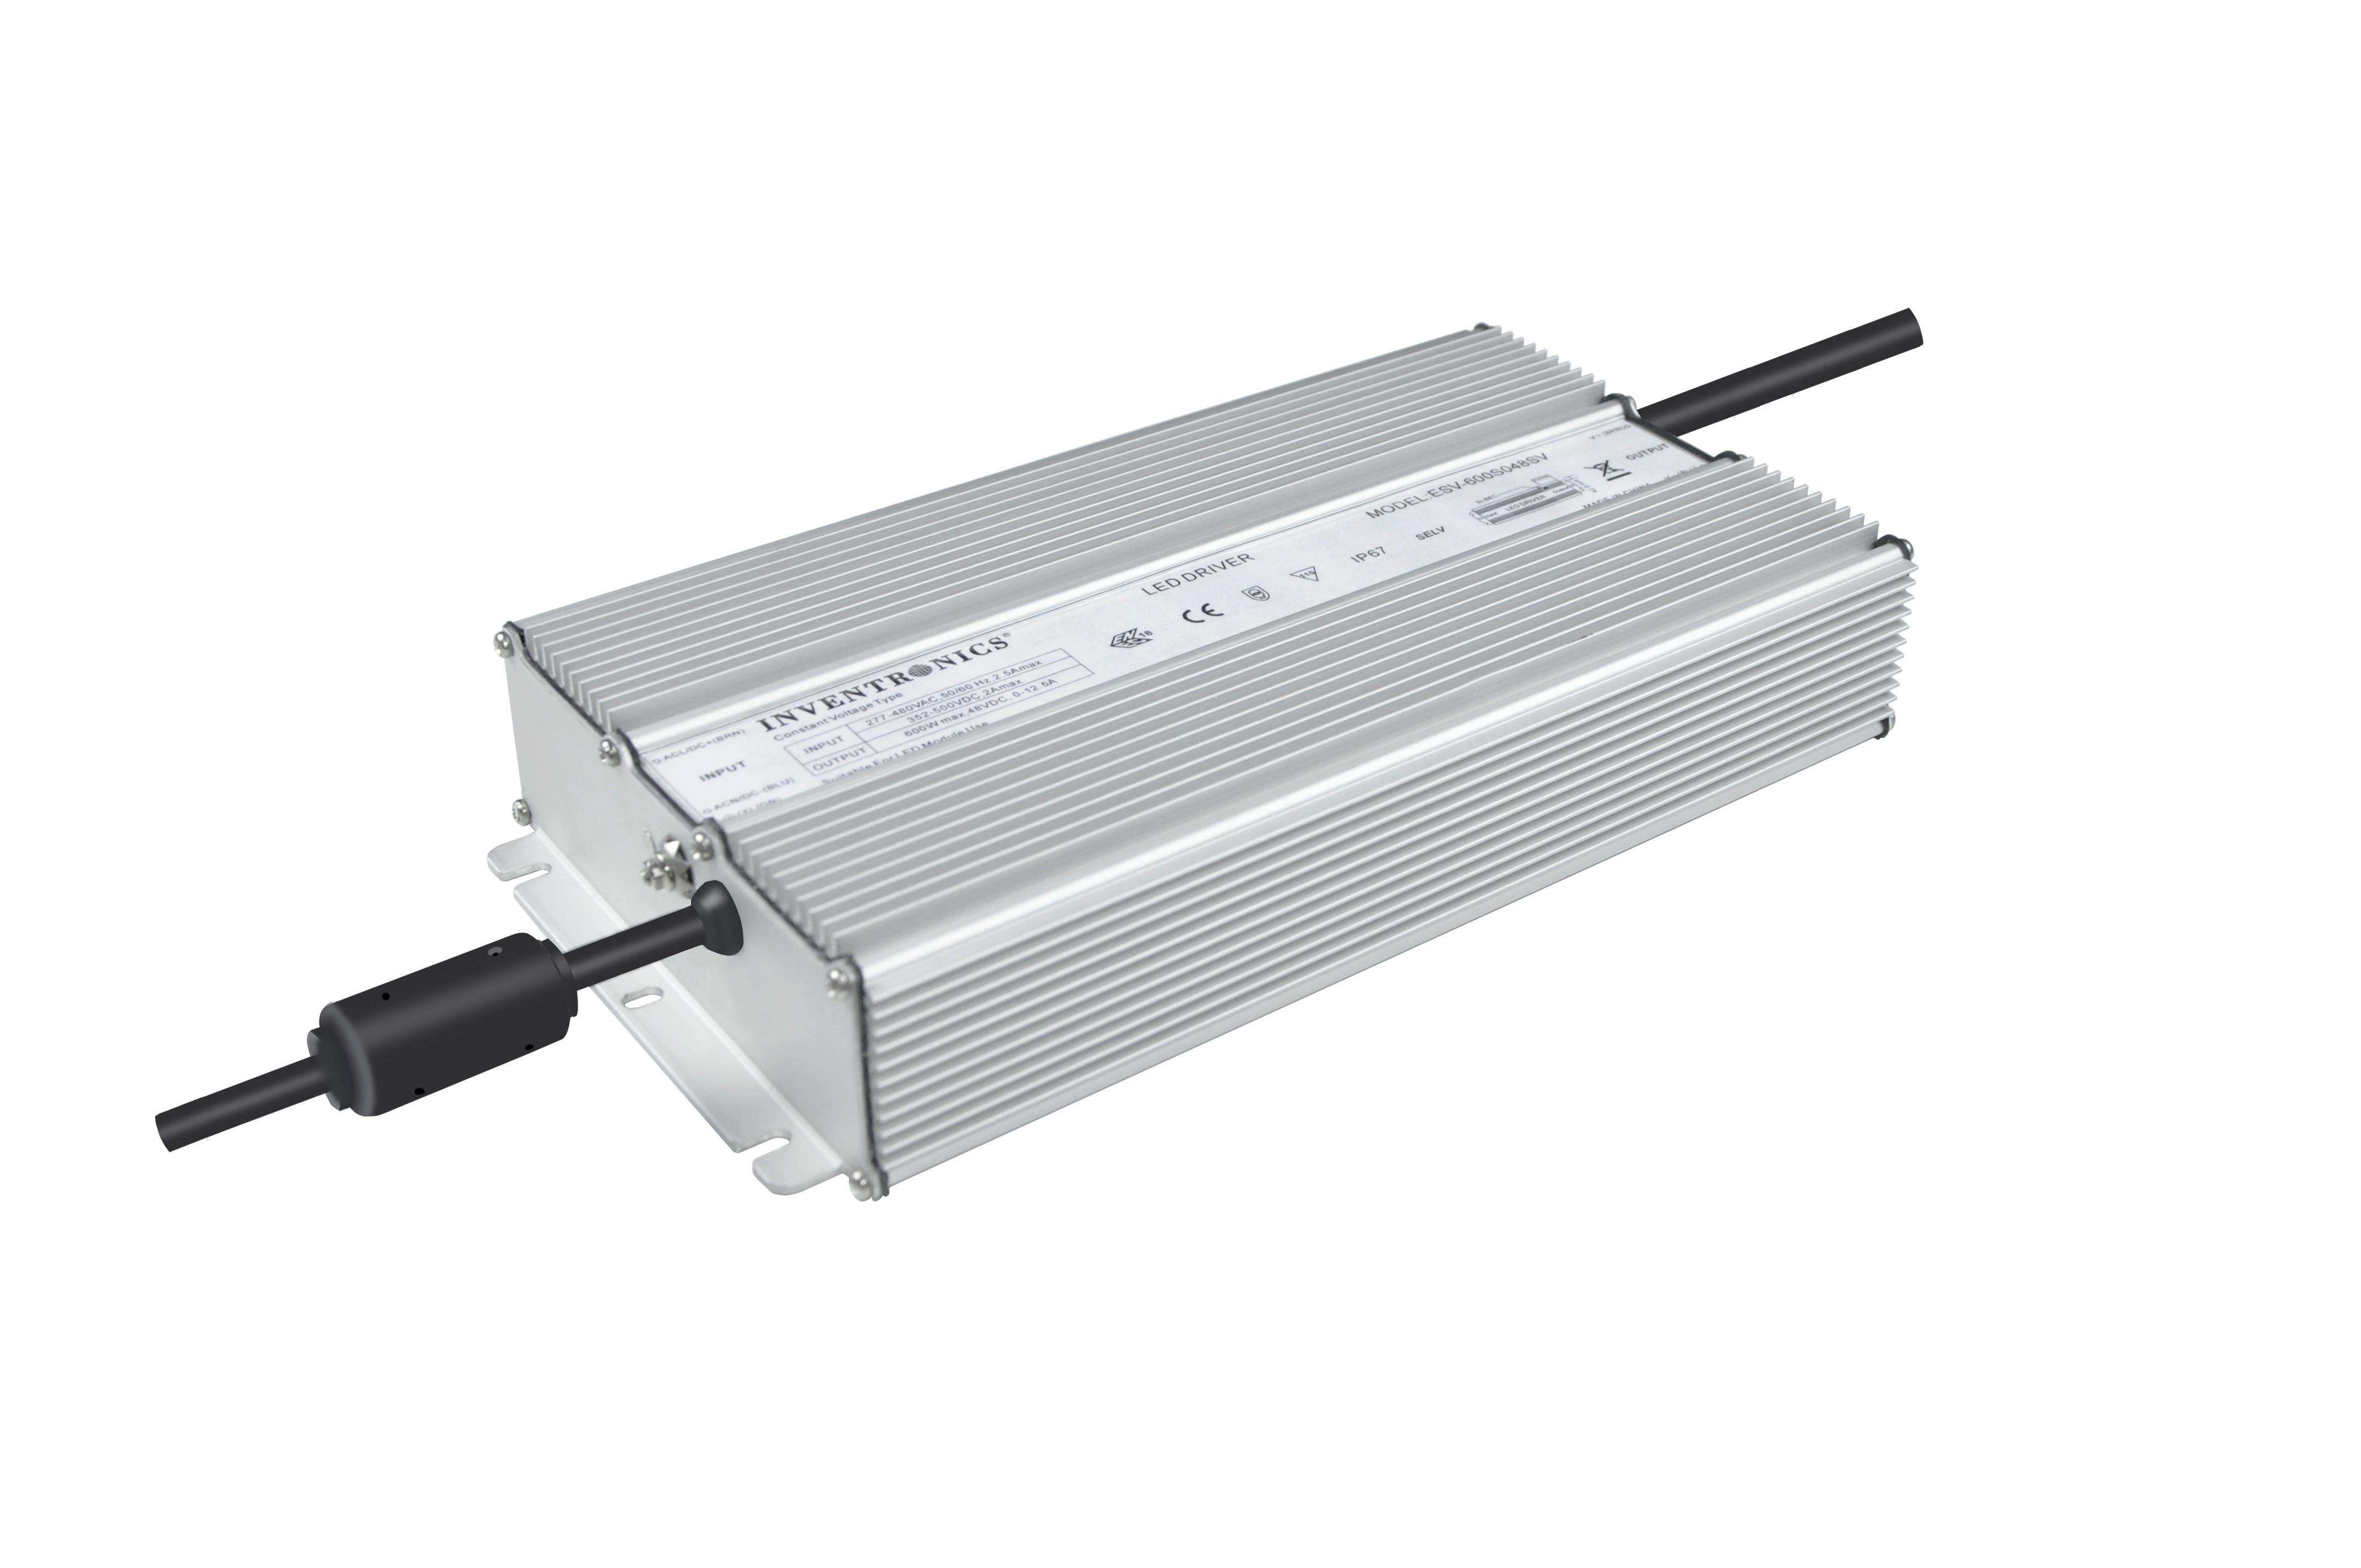 ESV-600 IP67 Constant-Voltage LED drivers